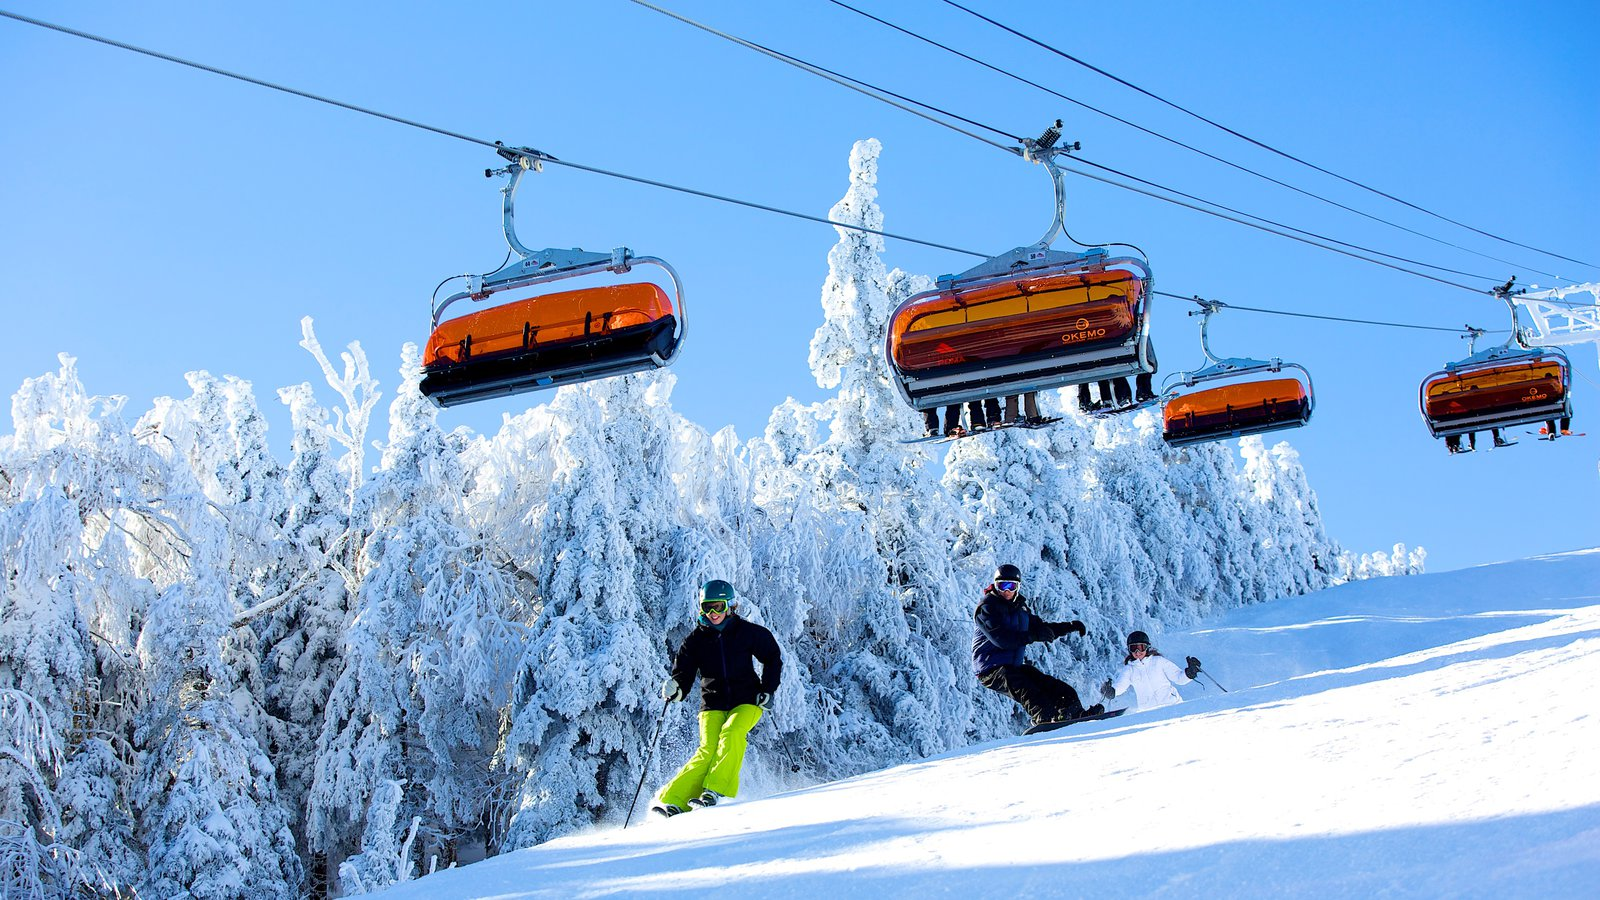 attraction pictures: view images of okemo mountain resort